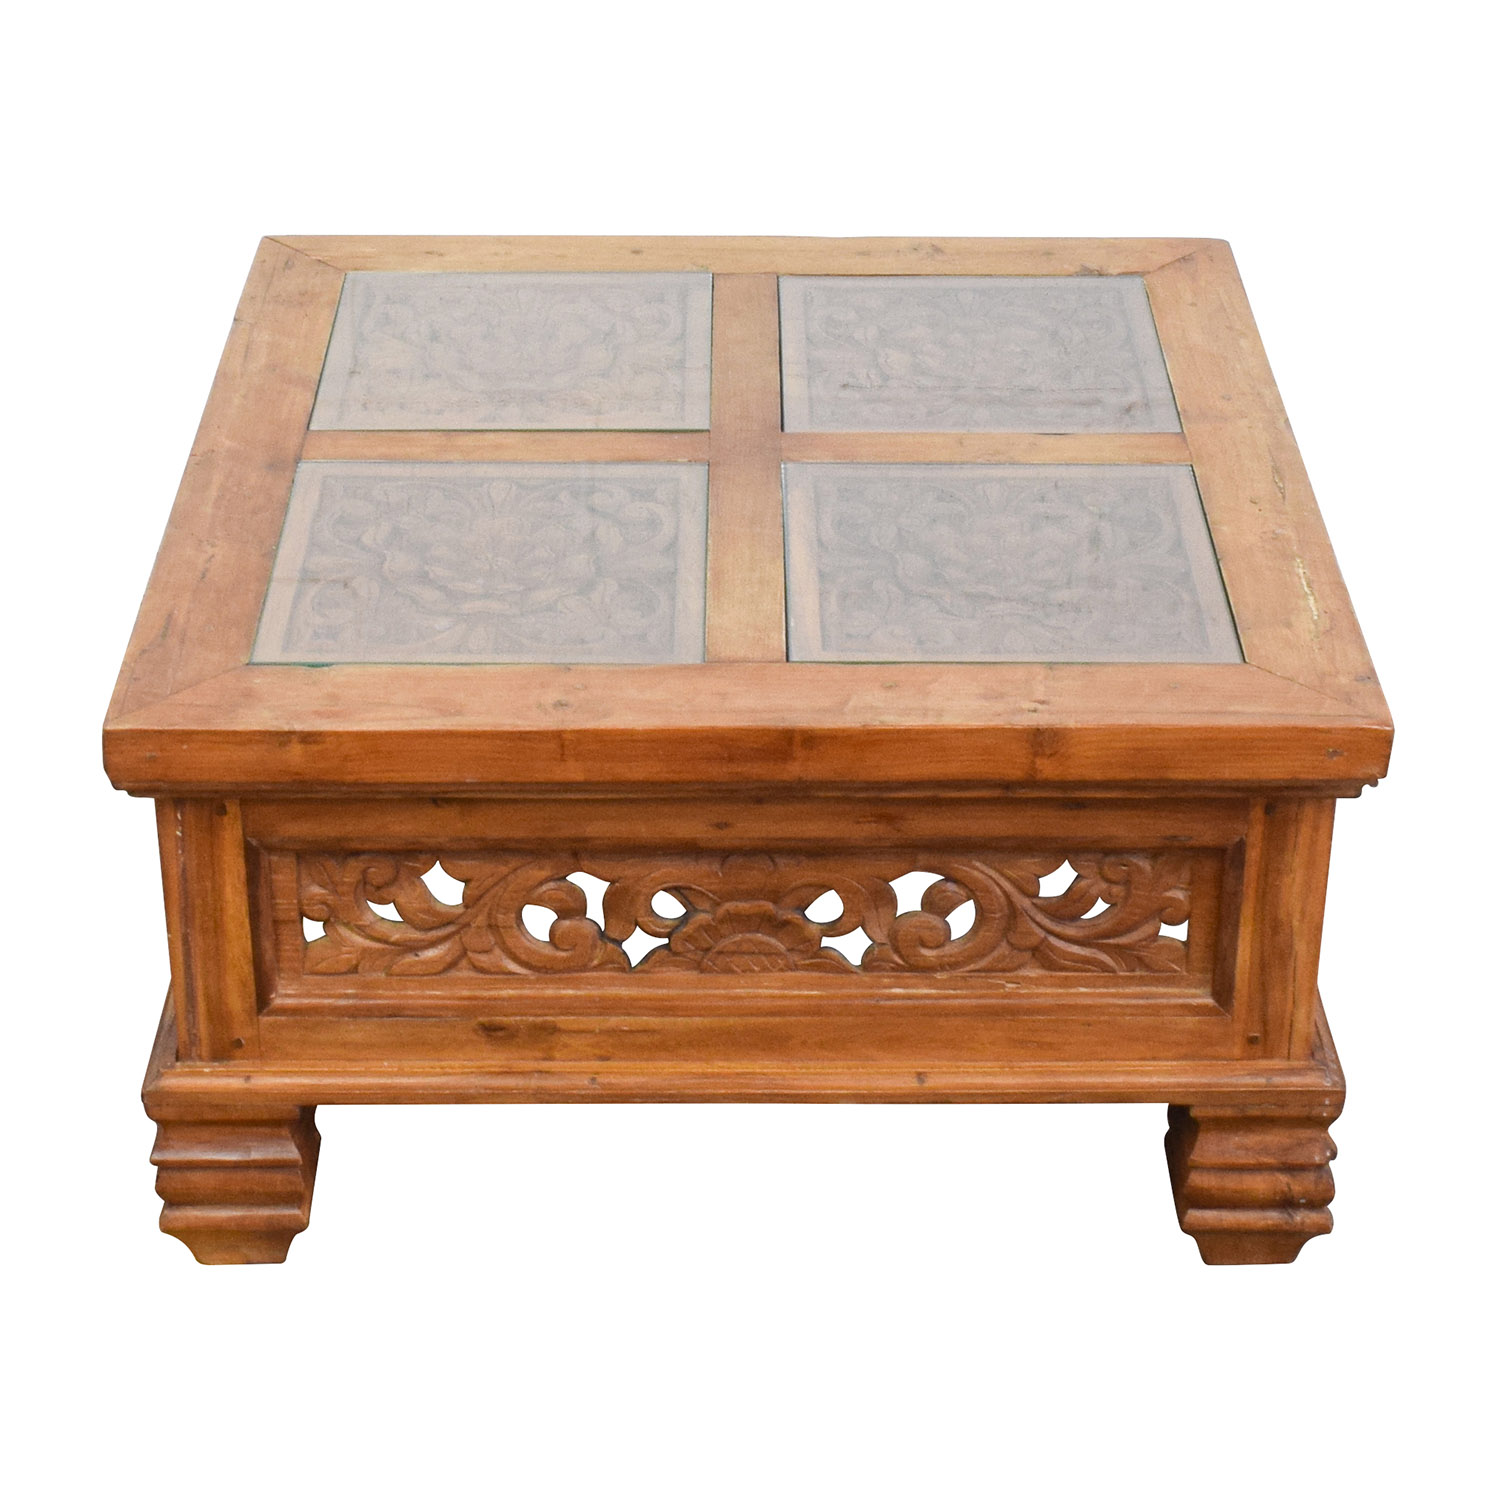 77 off teak carved coffee table with glass top tables Glass coffee table tops